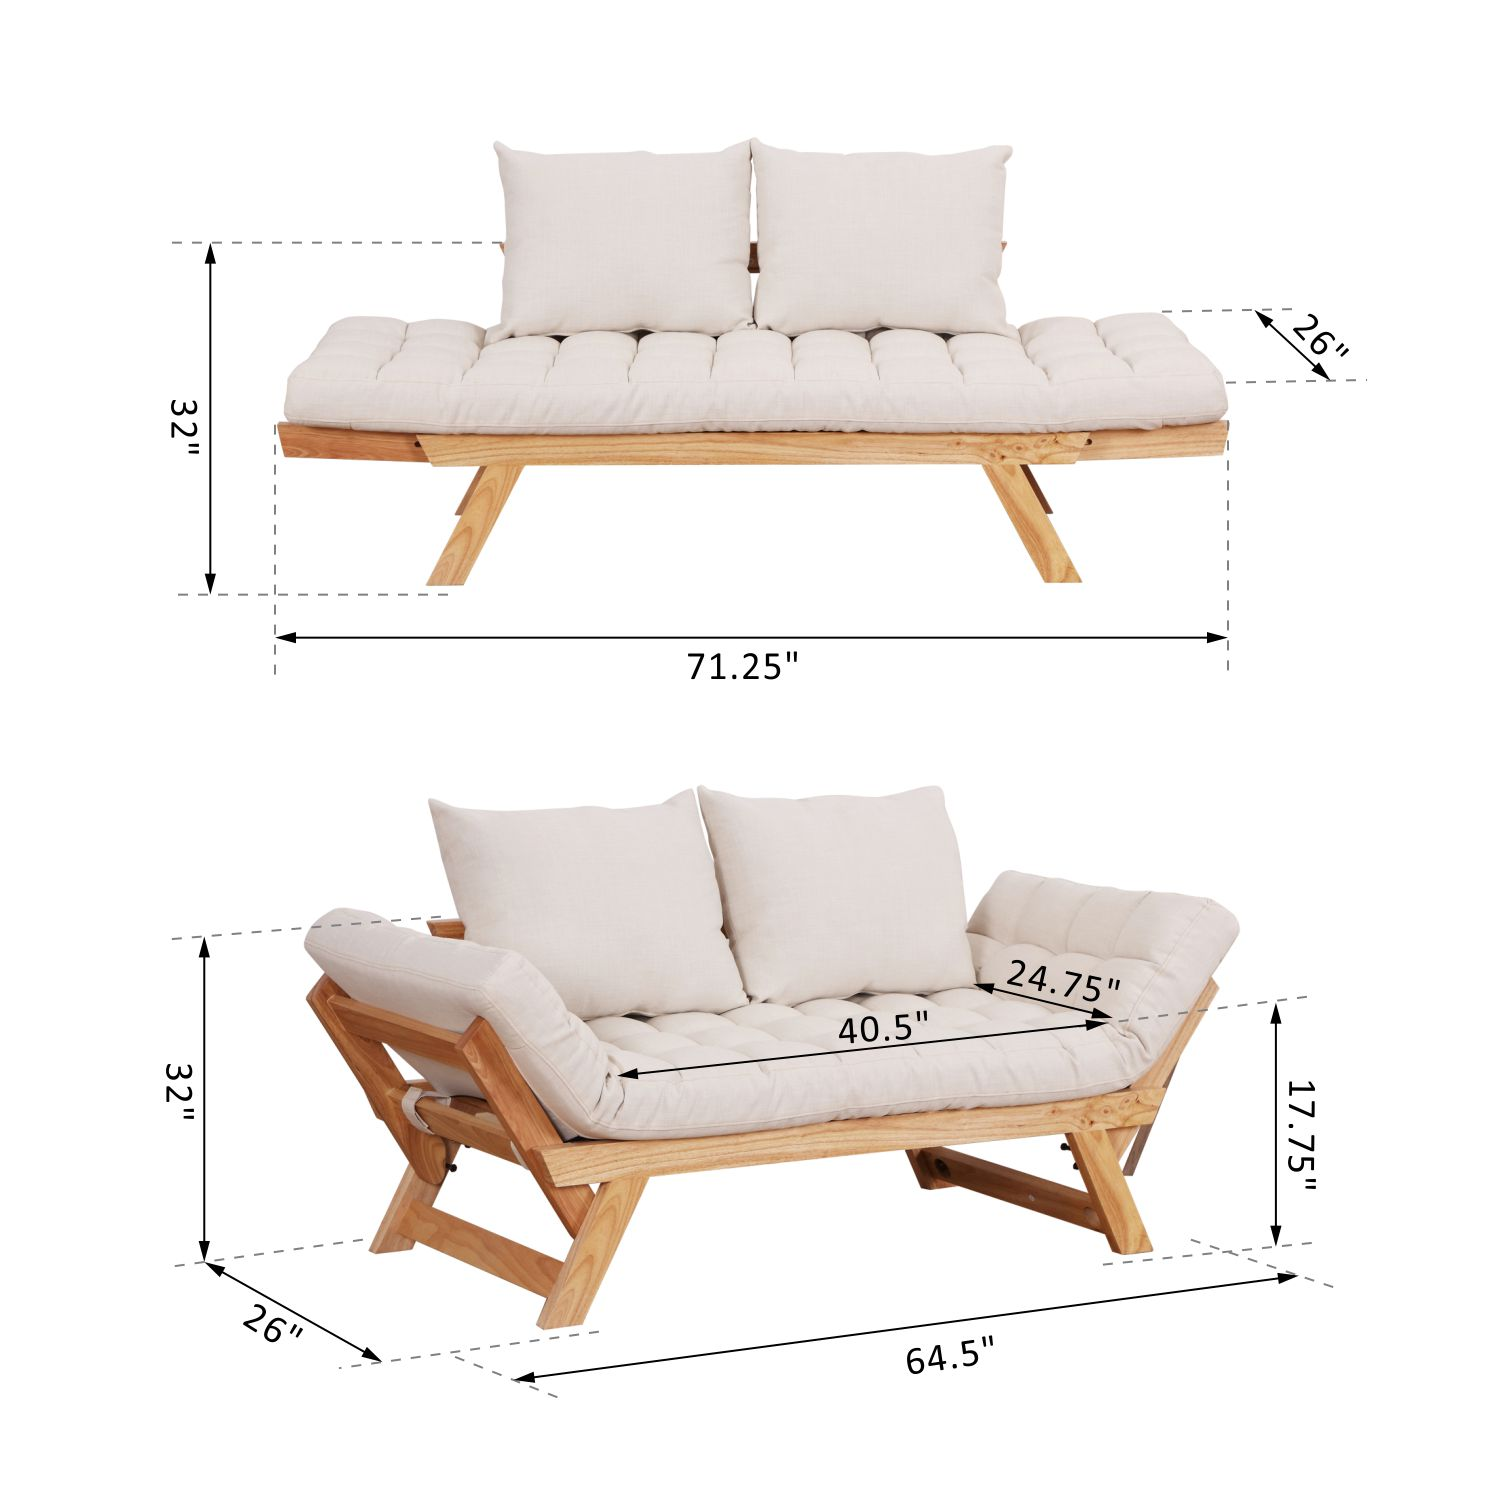 Convertible-Sofa-Bed-Sleeper-Couch-Chaise-Lounge-Chair-Adjustable-Padded-Pillow thumbnail 39